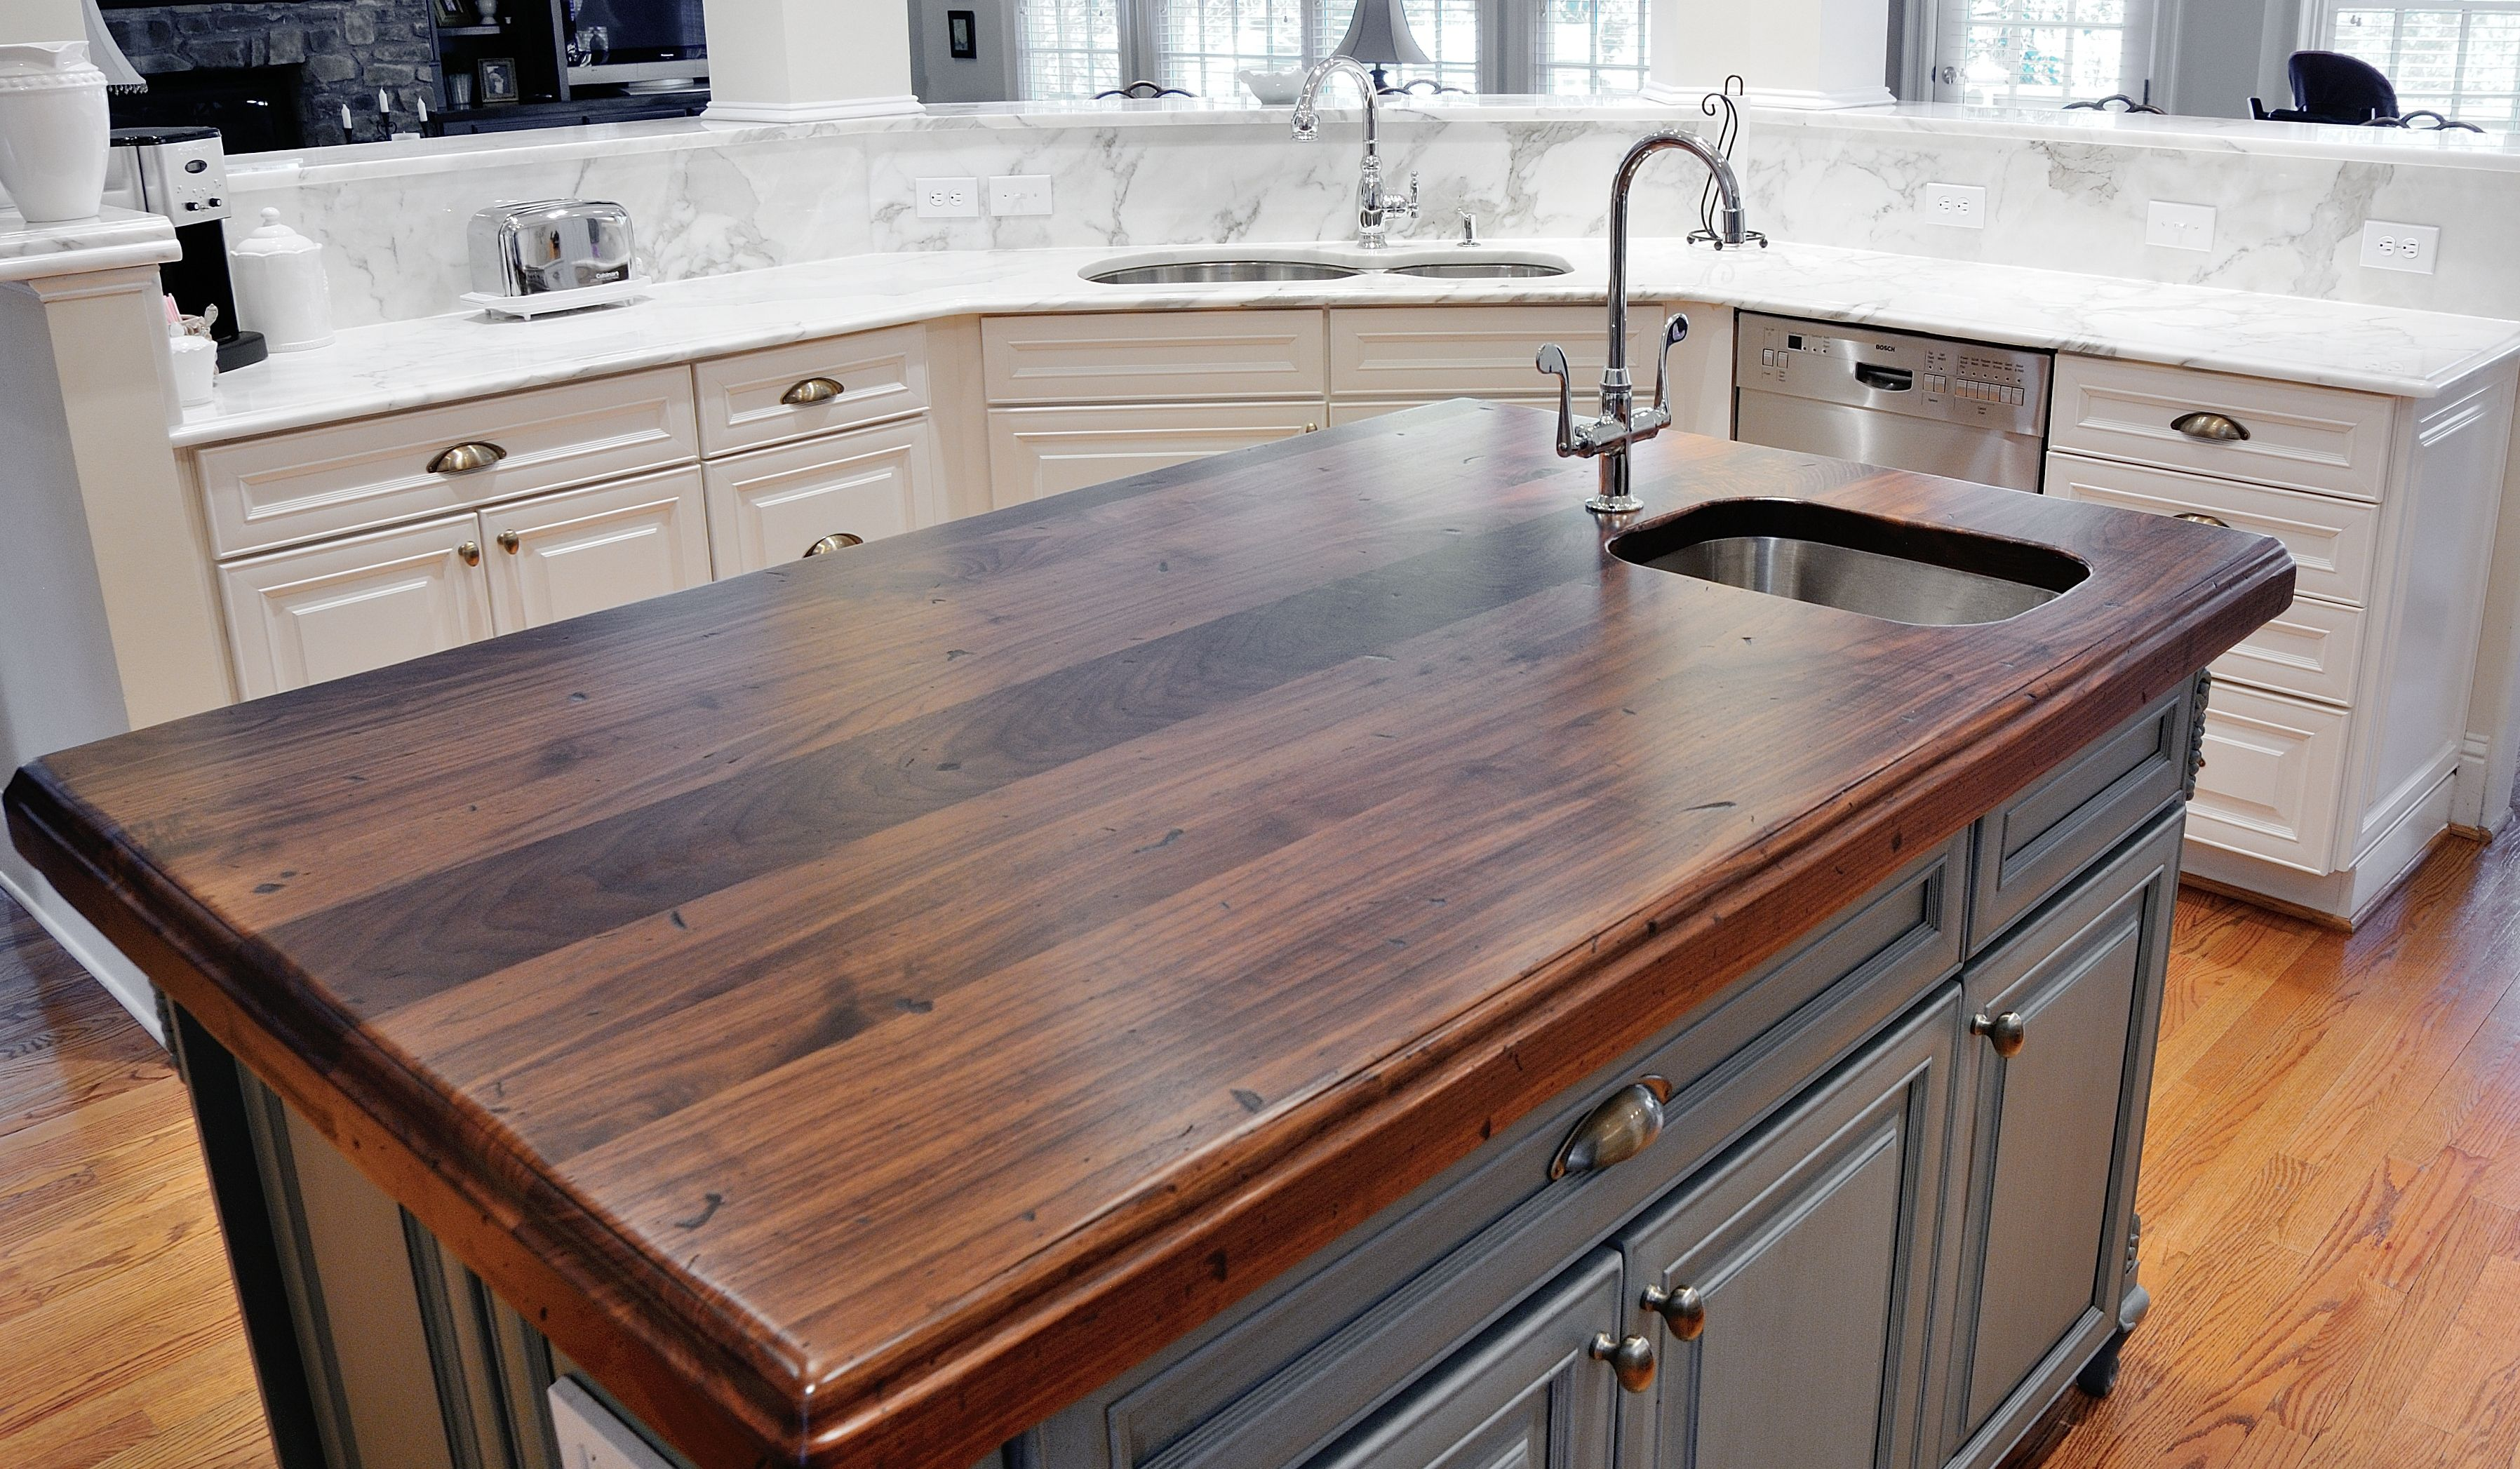 distressed wood countertops wood countertops kitchen 17 Best Images About Black Walnut By Craft Art On Pinterest Wood